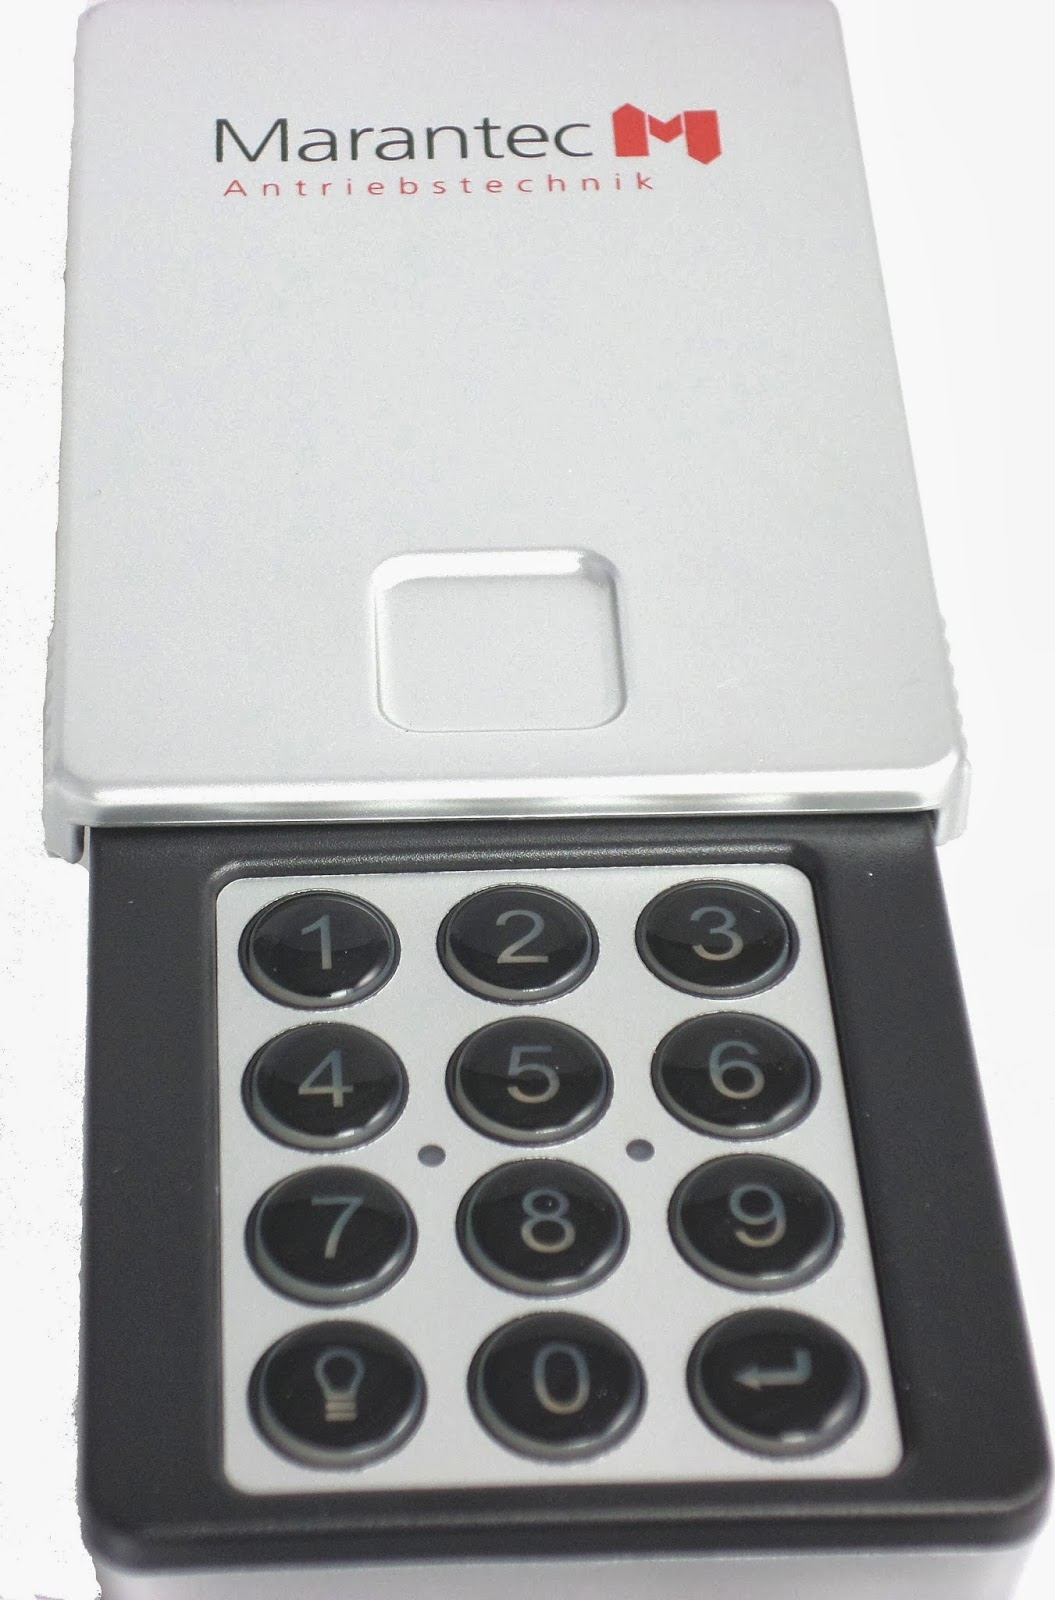 M13-631 Marantec Wireless Keyless Entry